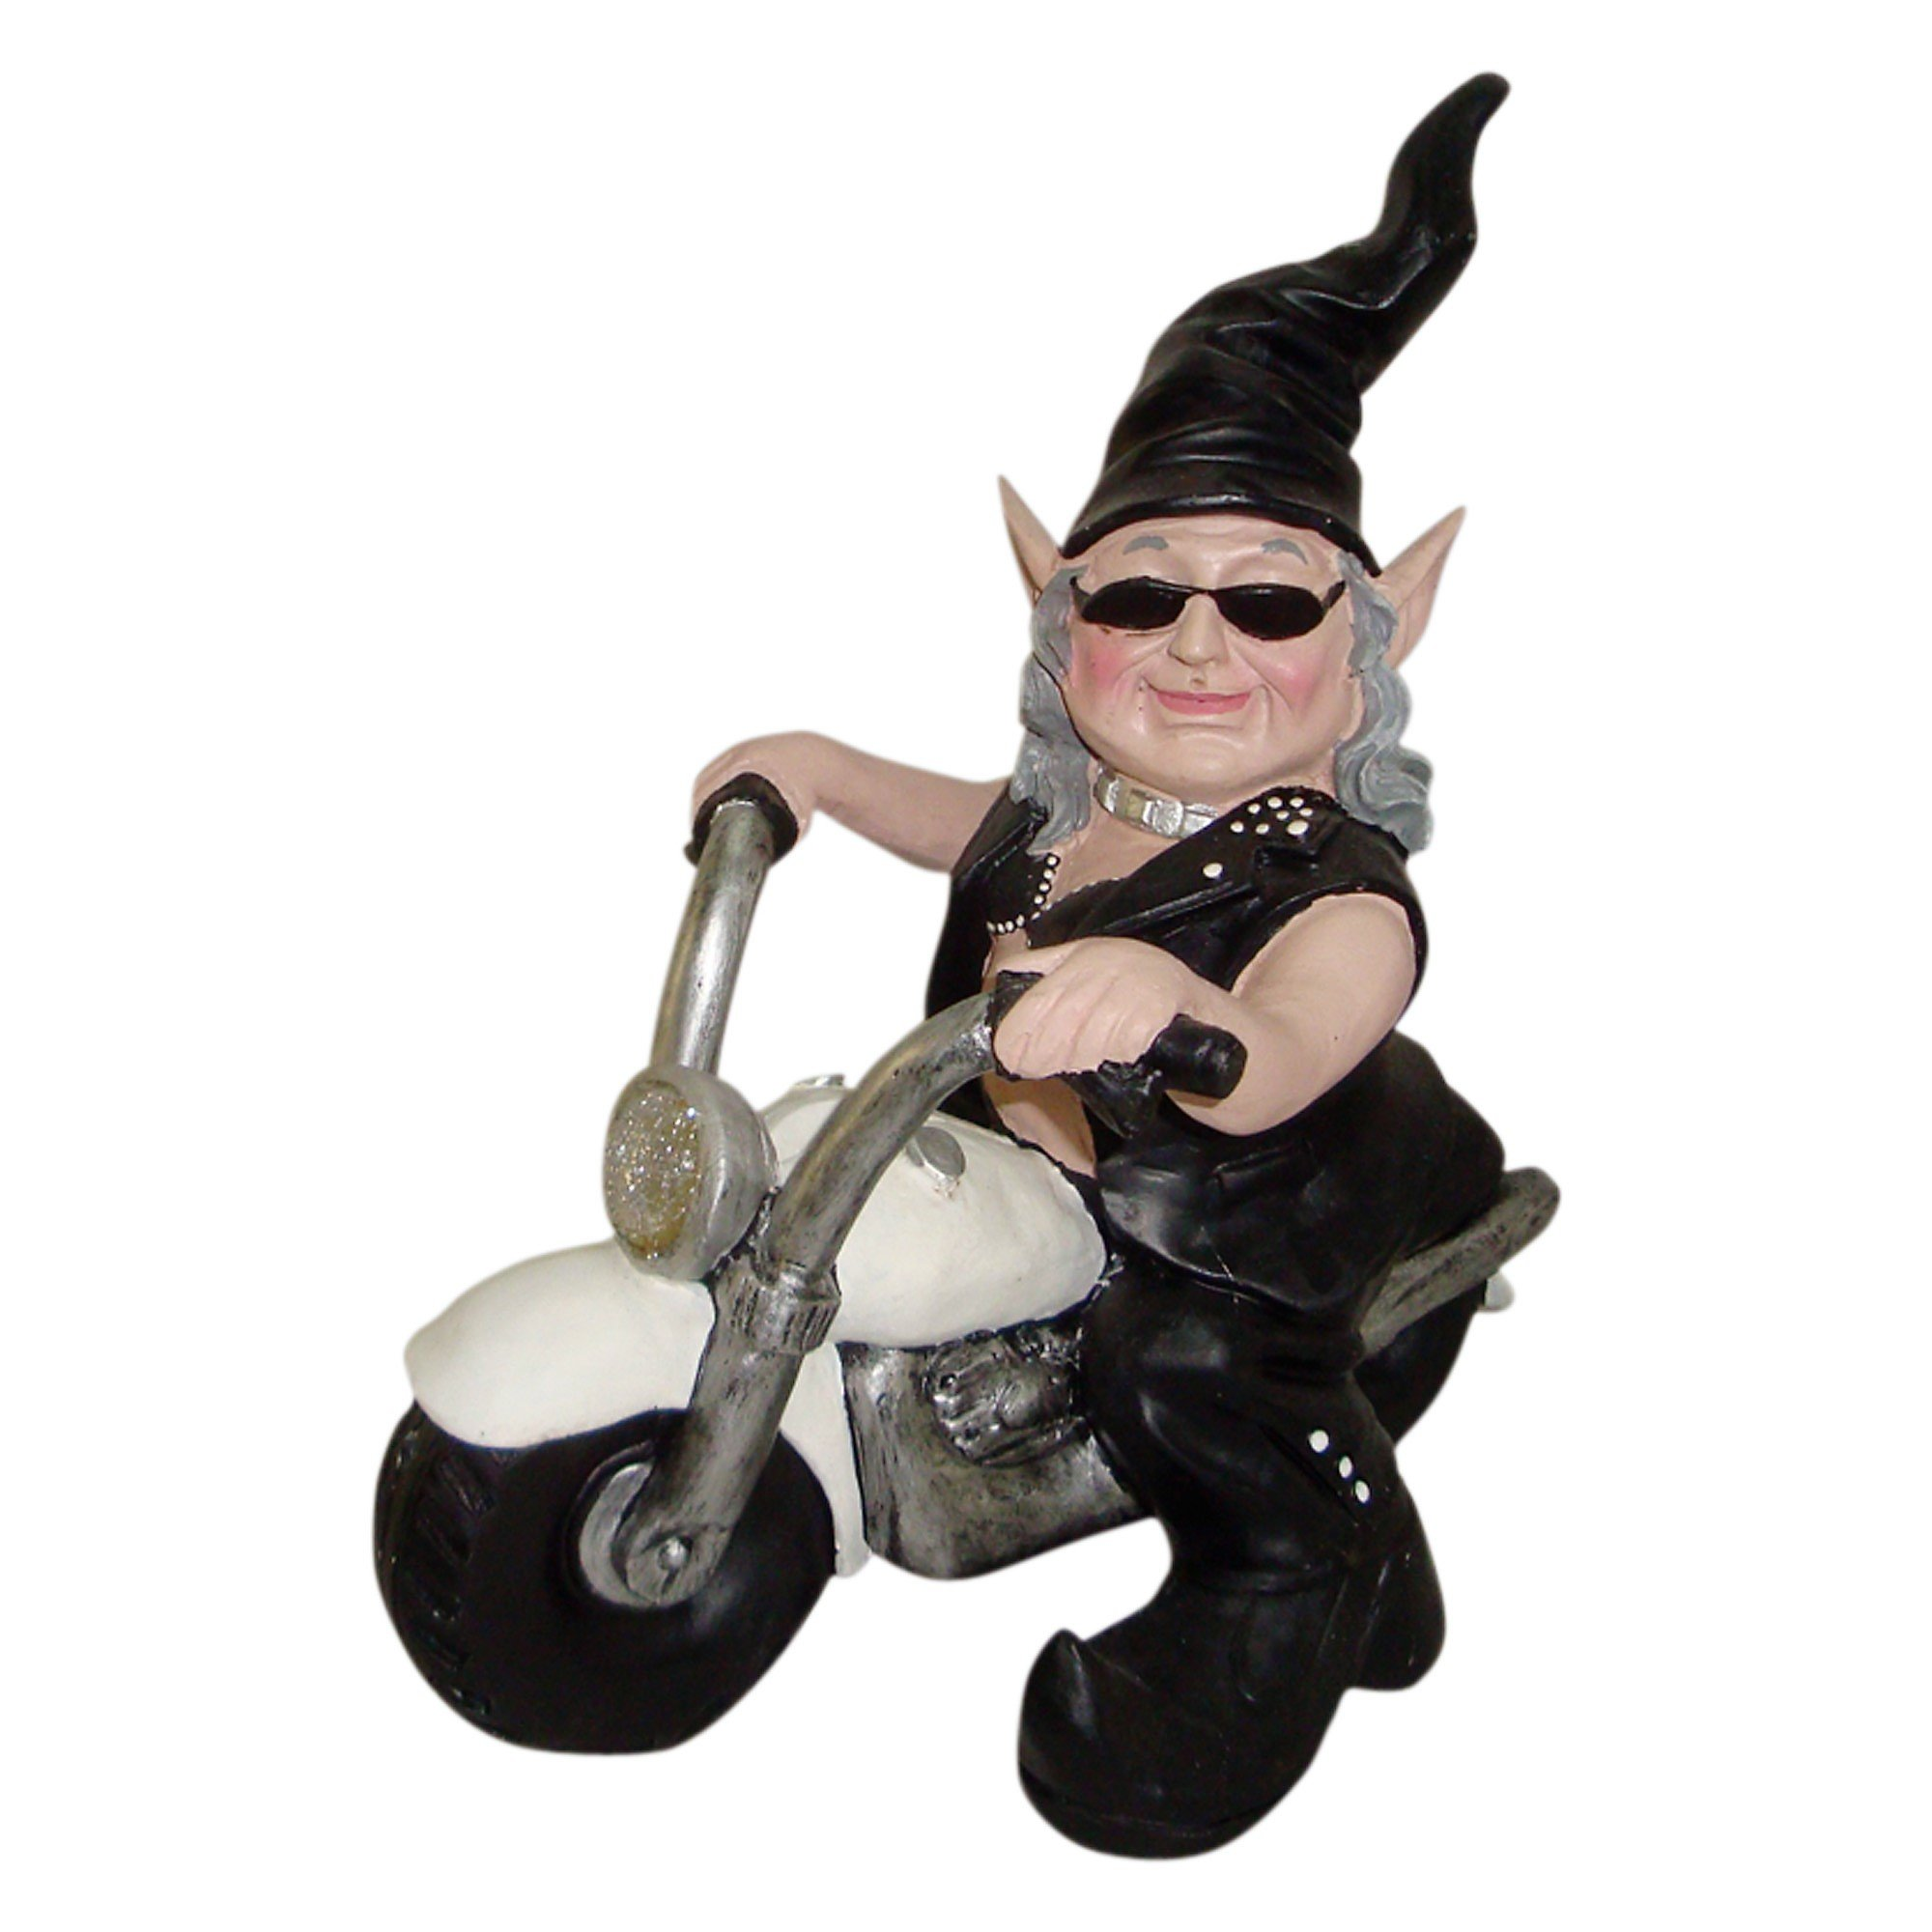 """Nowaday Gnomes Biker Babe the Biker Gnome in Leather Motorcycle Gear Riding Her White Bike Home & Garden Gnome Statue 12"""" H"""